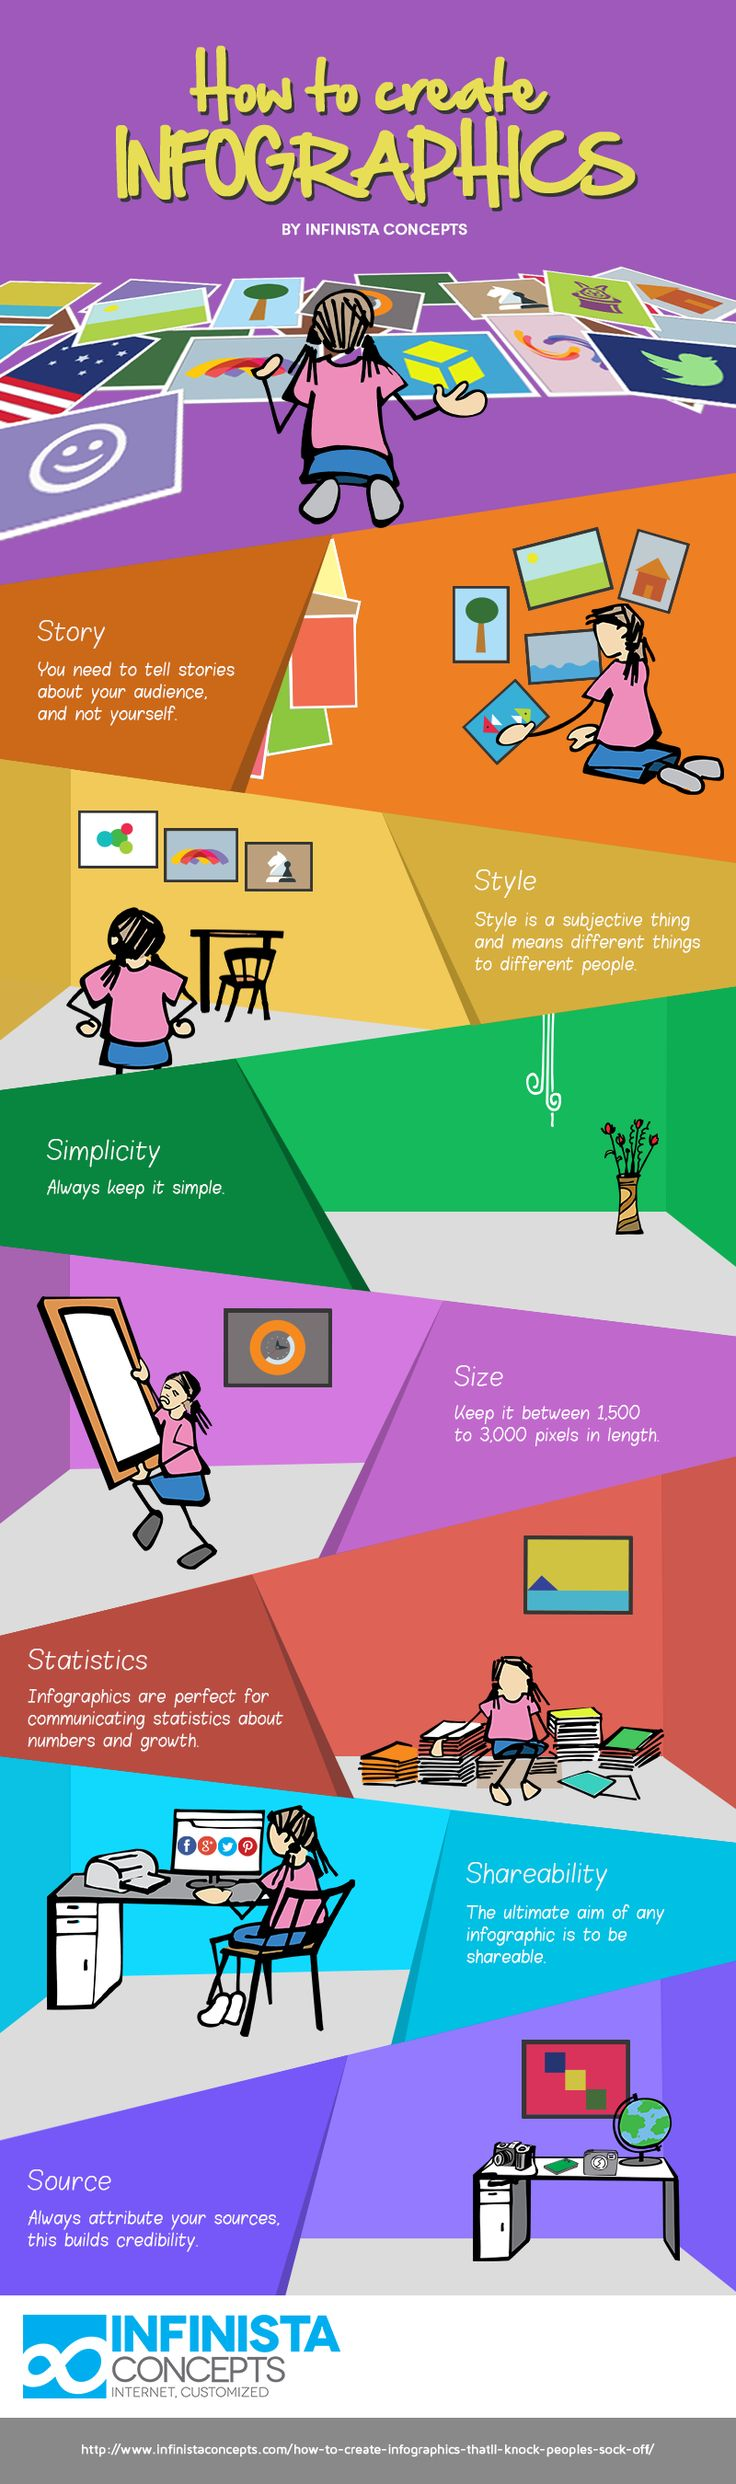 how to create web graphics